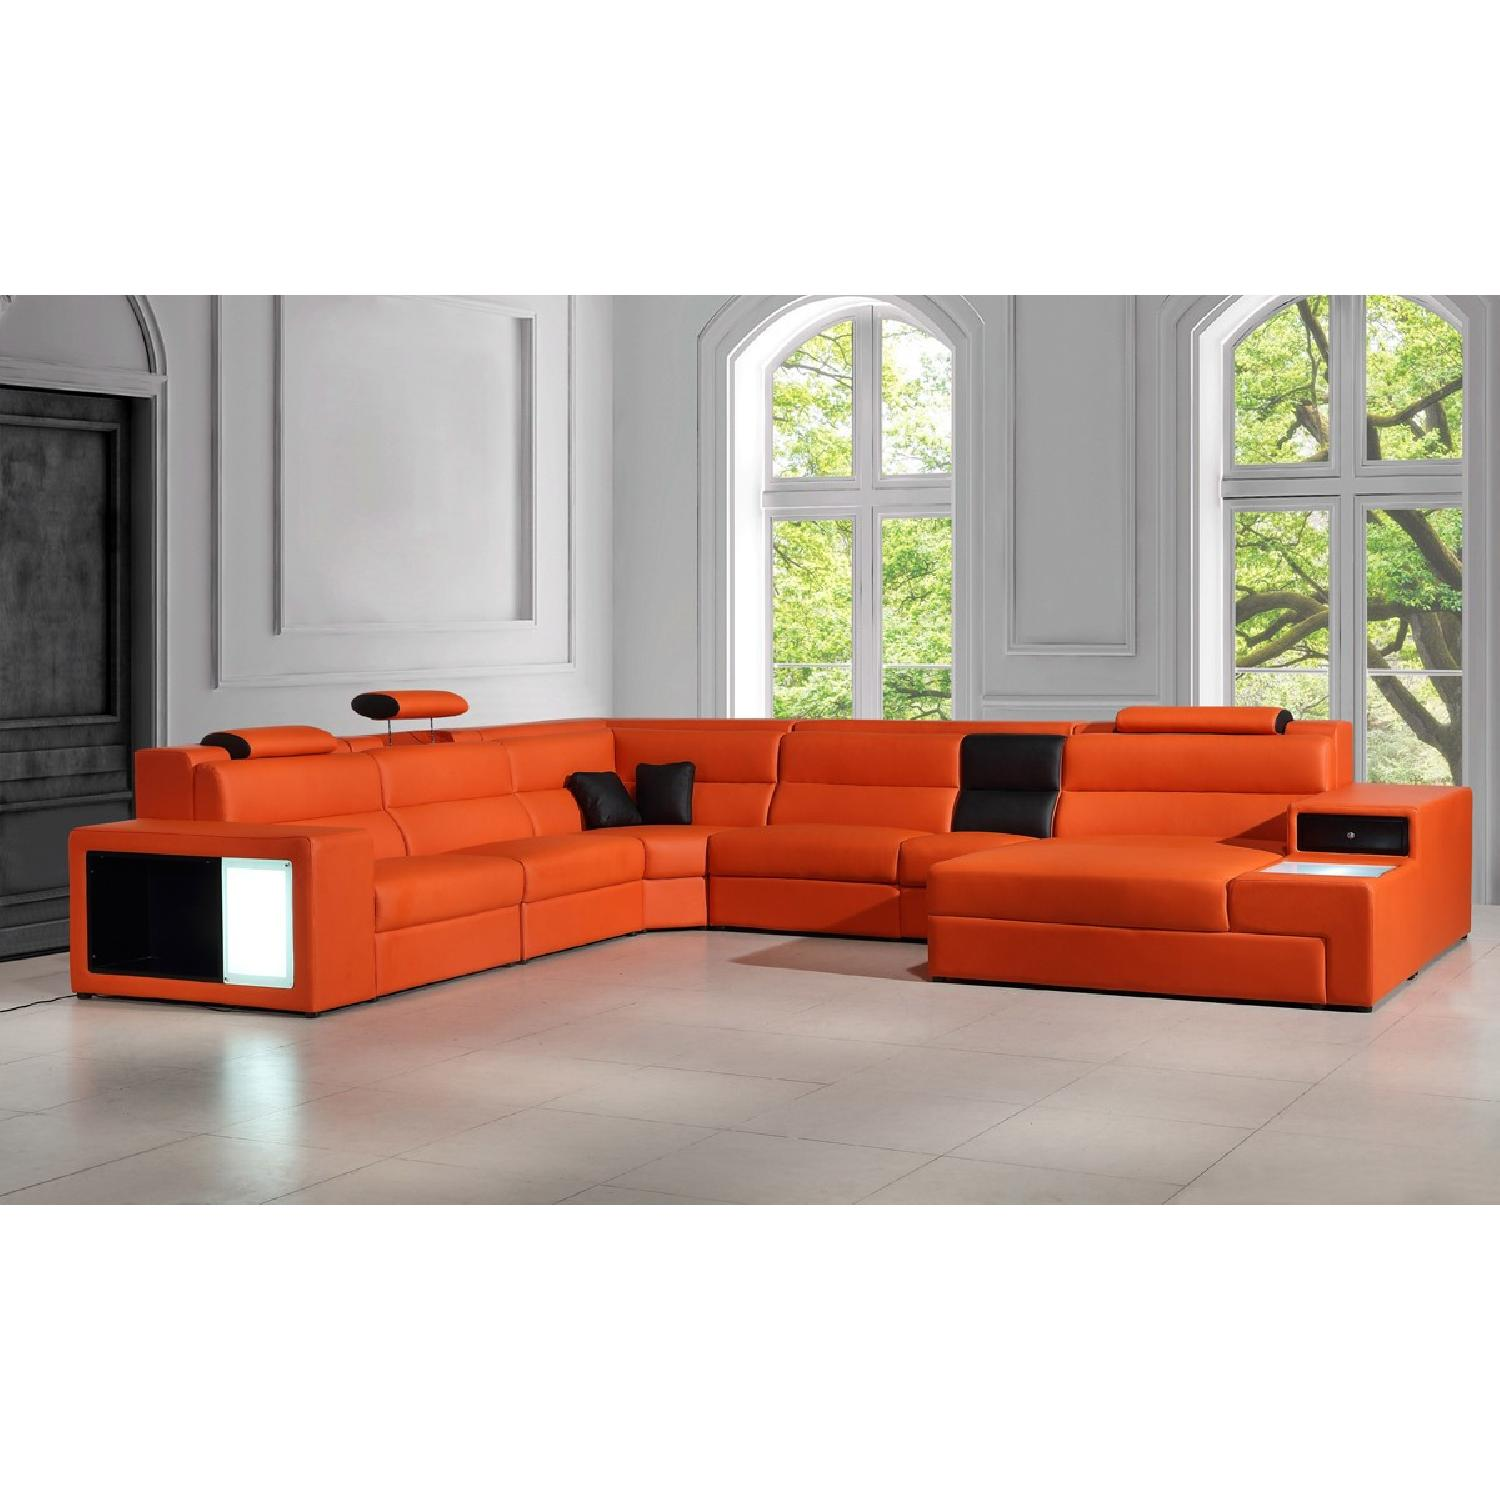 ... VIG Furniture Modern Orange Faux Leather Sectional Sofa 4 ...